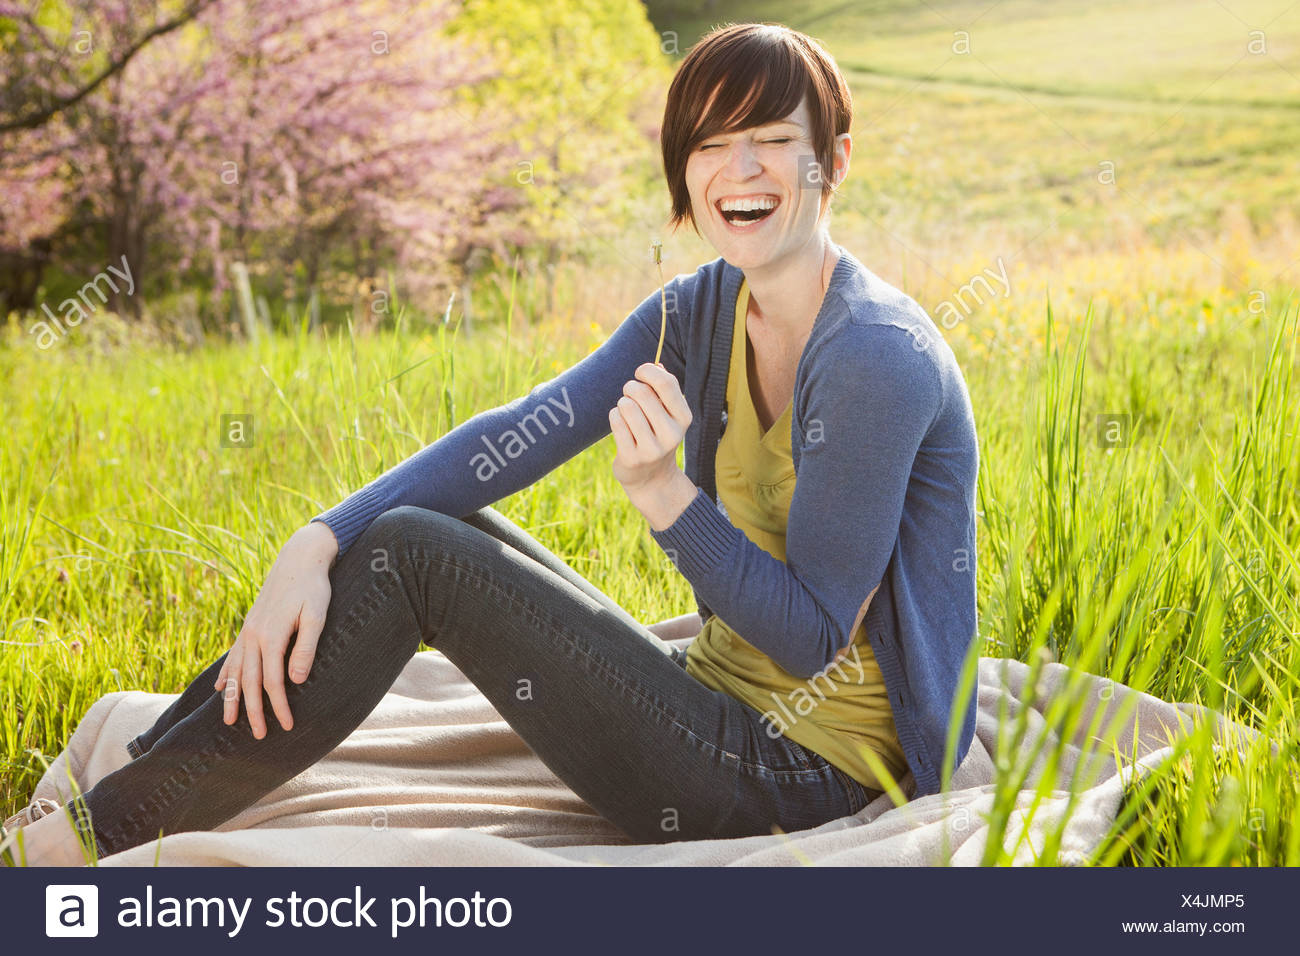 A young woman sitting in an open space, a grass field, on a blanket. - Stock Image